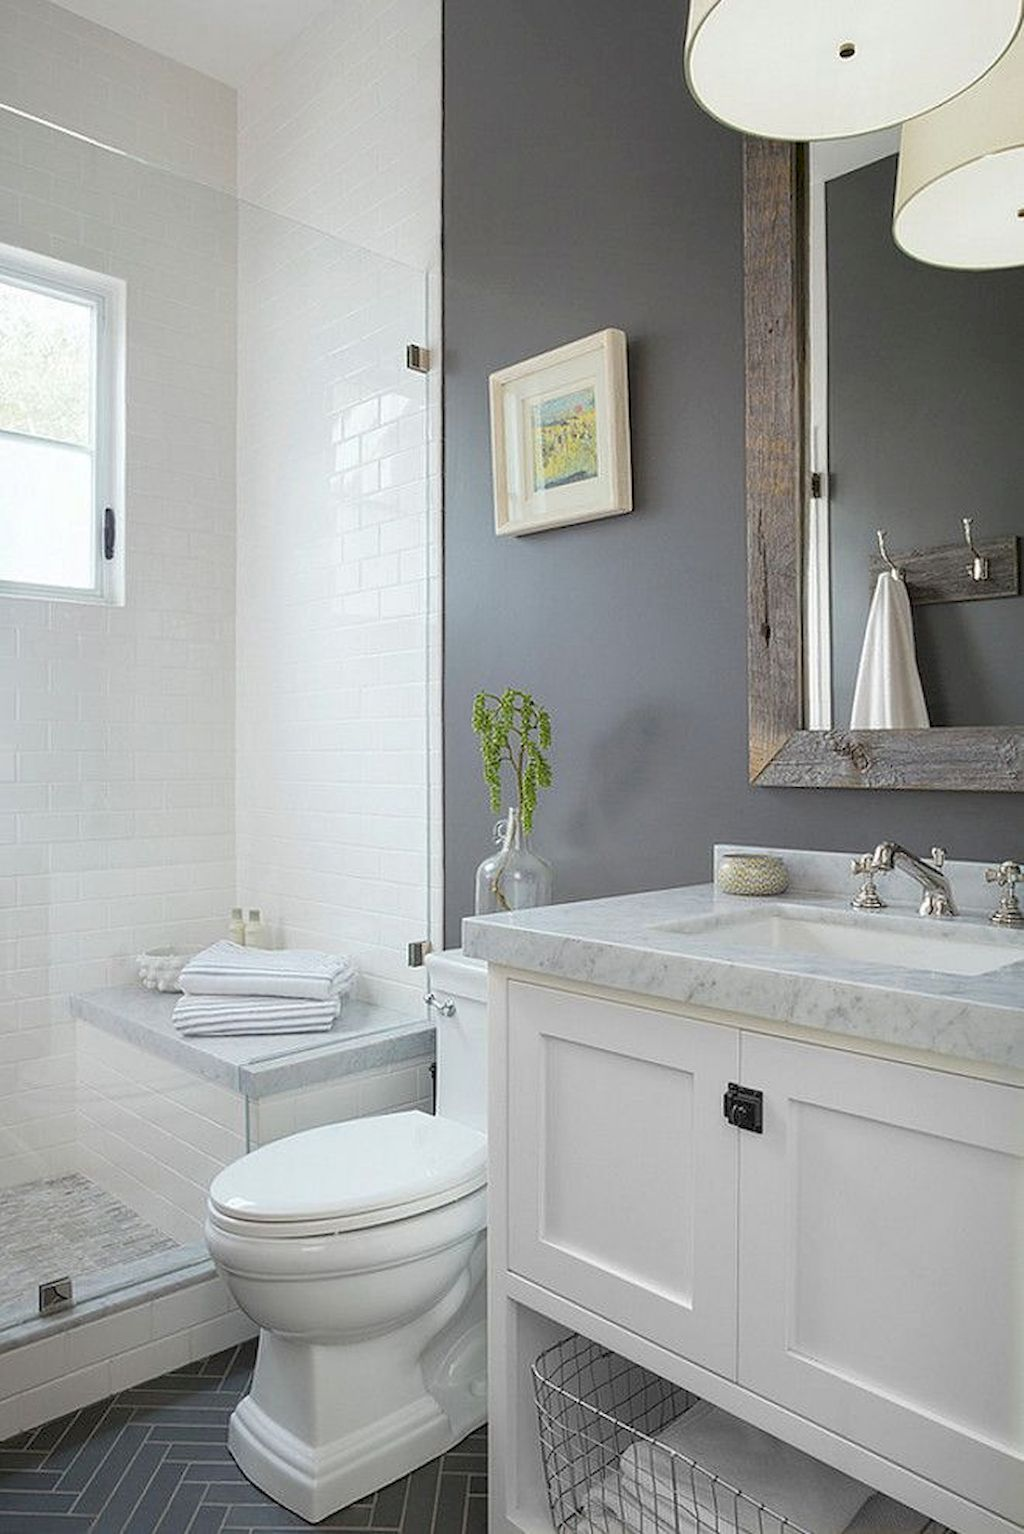 Fresh small master bathroom remodel ideas on